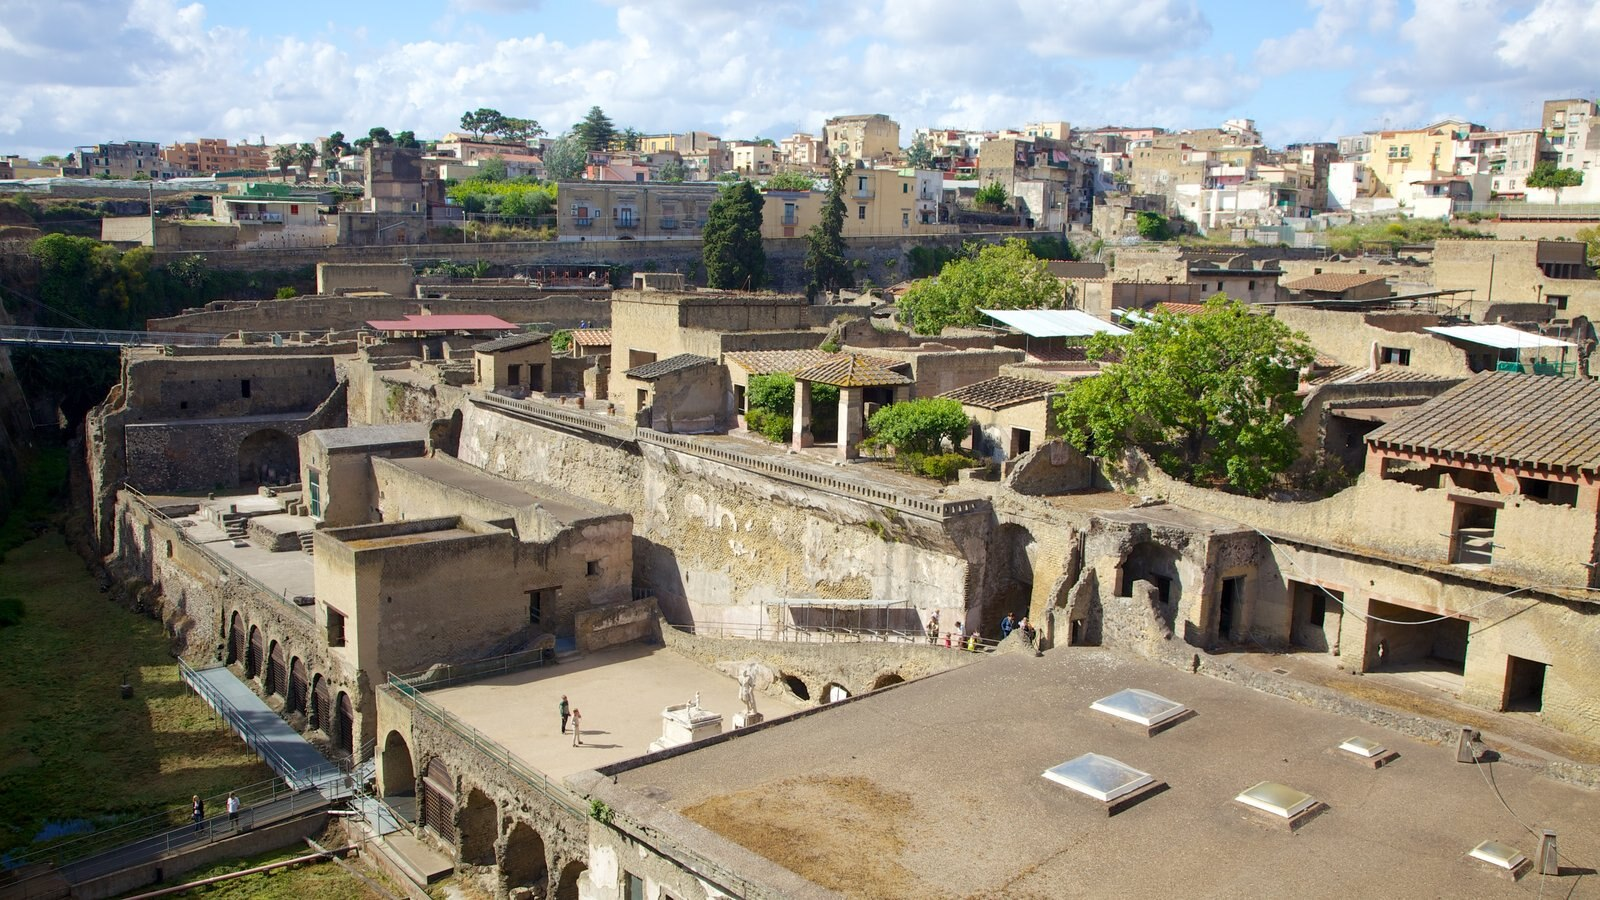 Ercolano which includes a city and landscape views